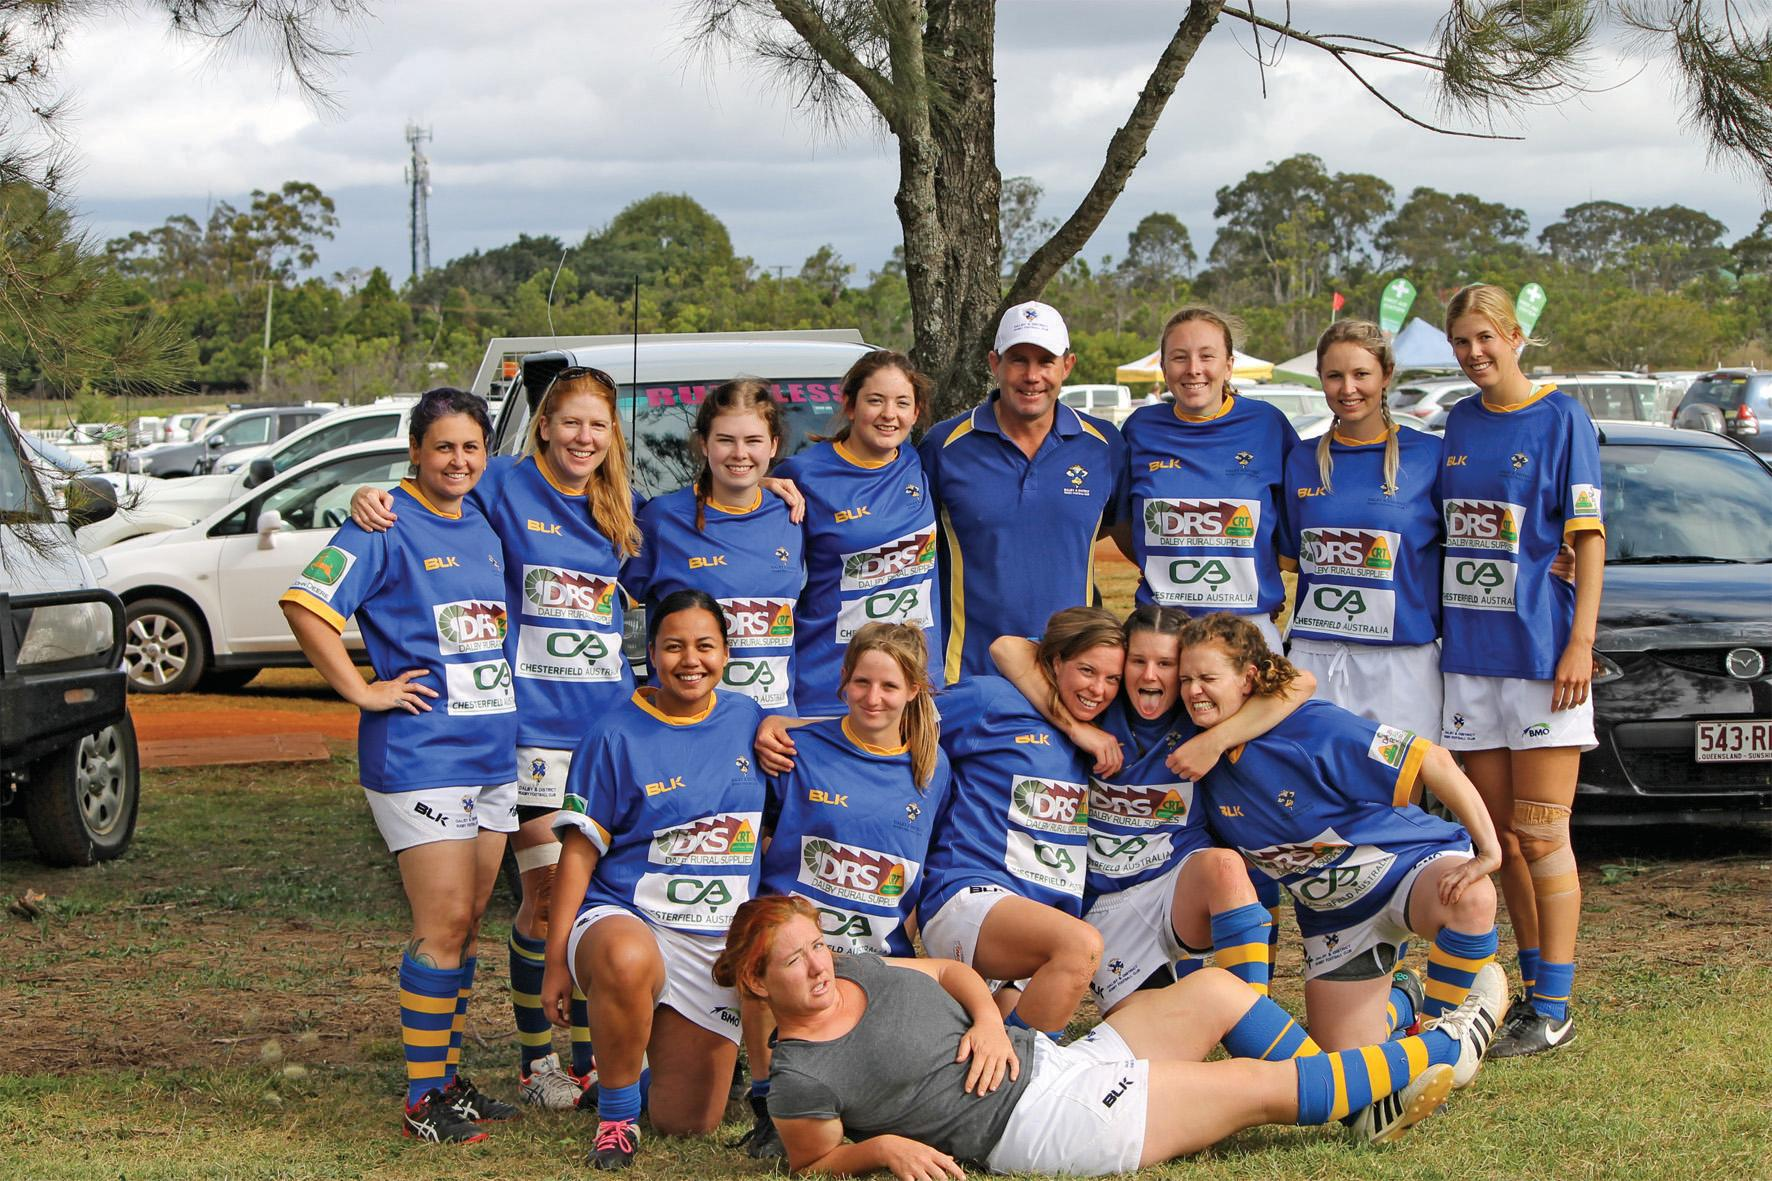 PIONEERS: The Dalby Whetchix rugby sevens team is leading the way for women's rugby in their region.